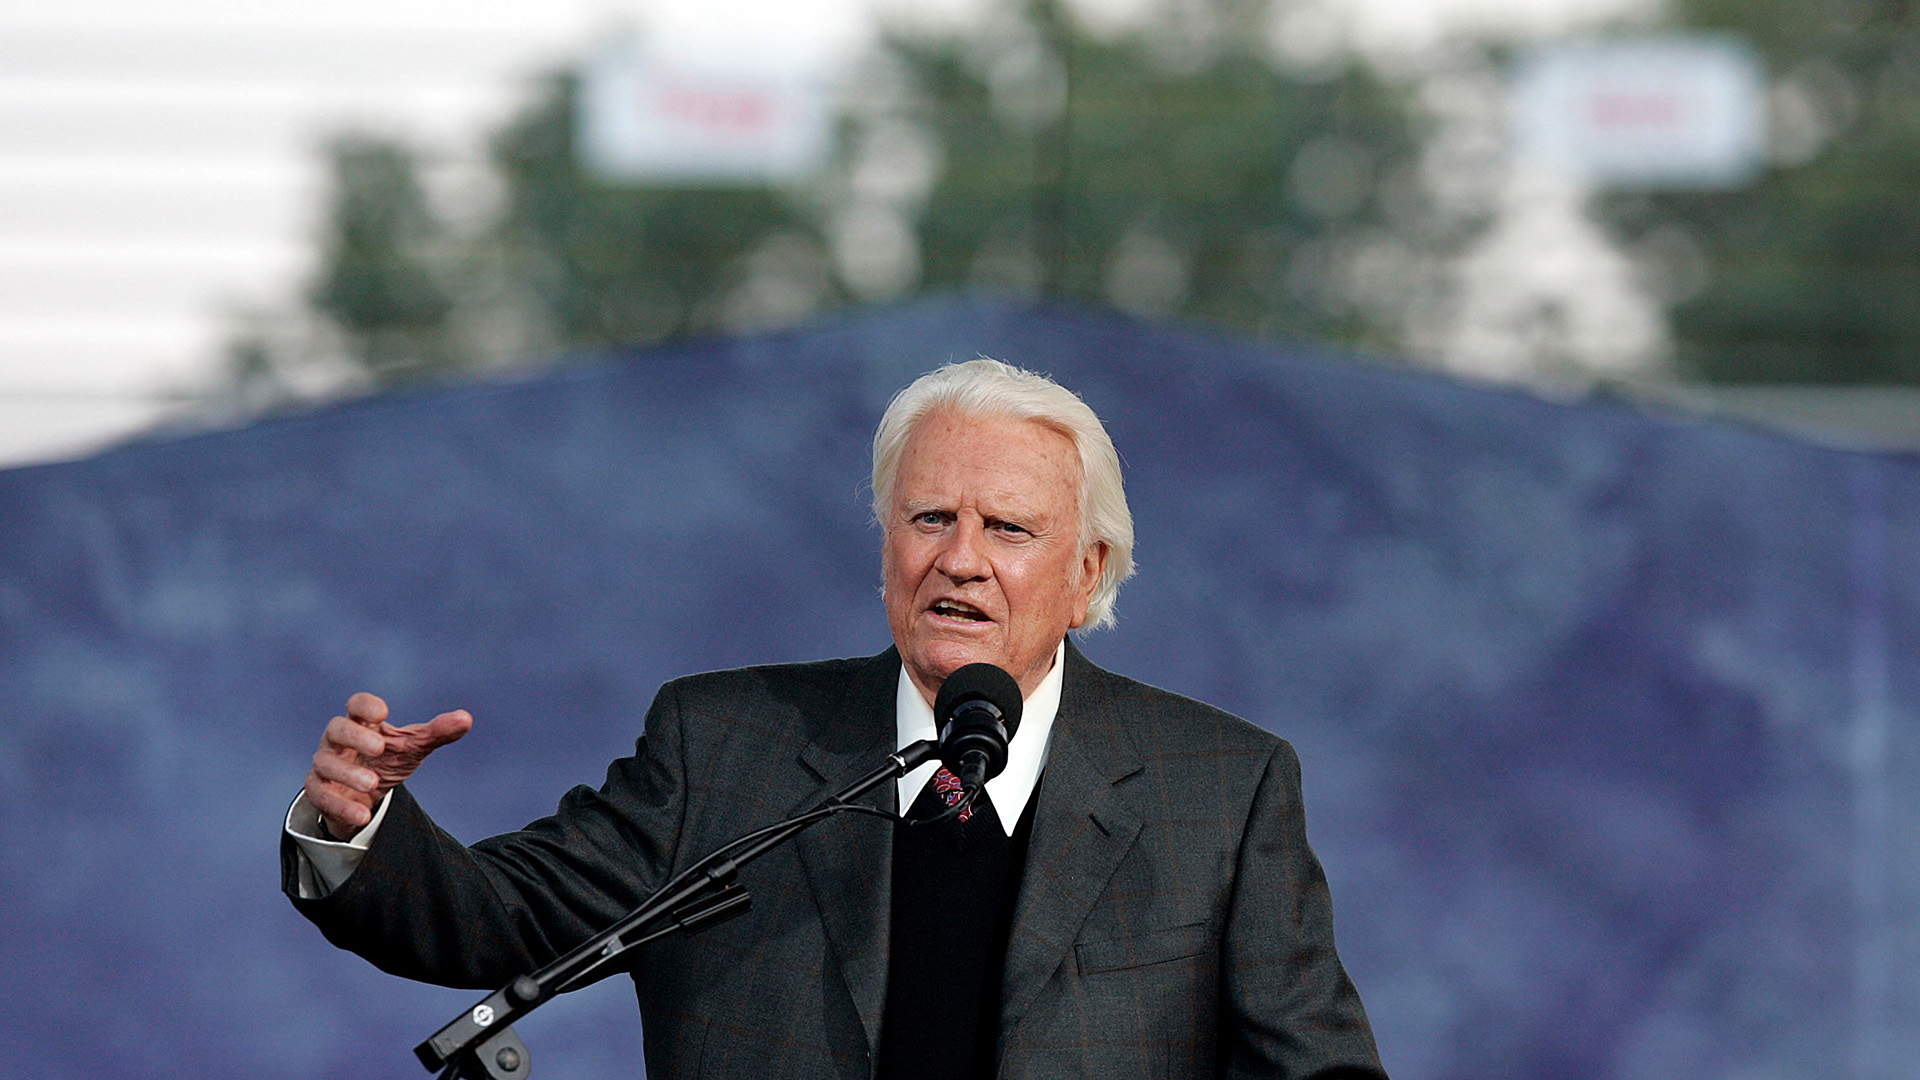 Online petition calls for national holiday honoring Rev. Billy Graham